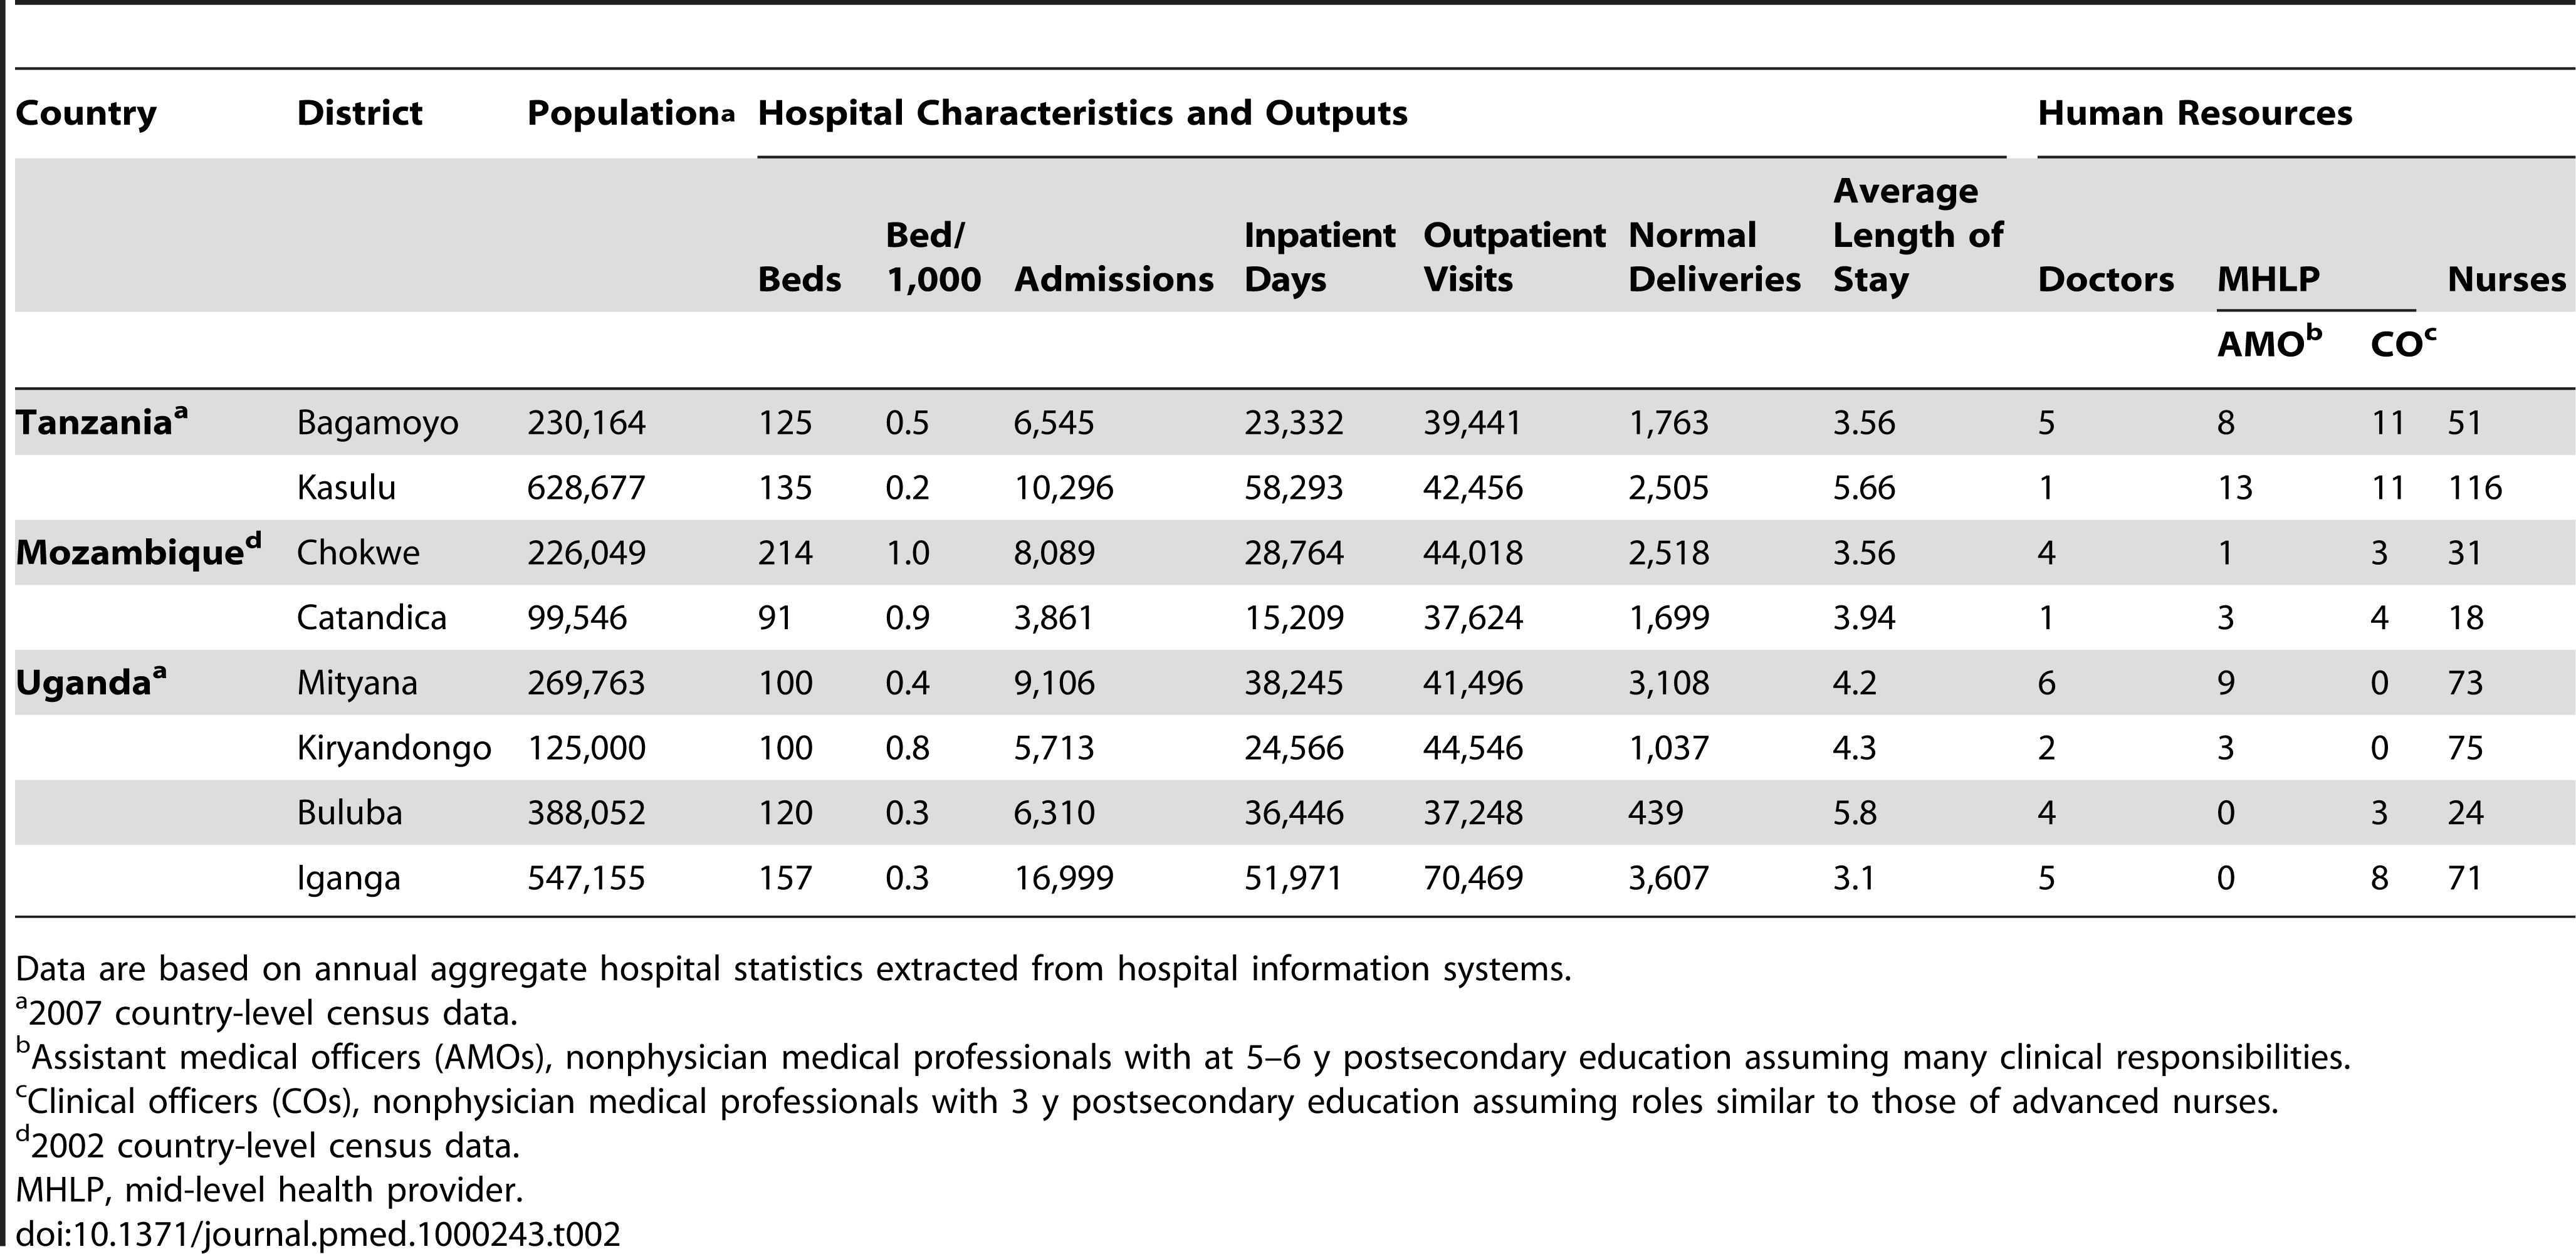 Characteristics, outputs, and human resources for eight district hospitals in Tanzania, Mozambique, and Uganda, 2008.